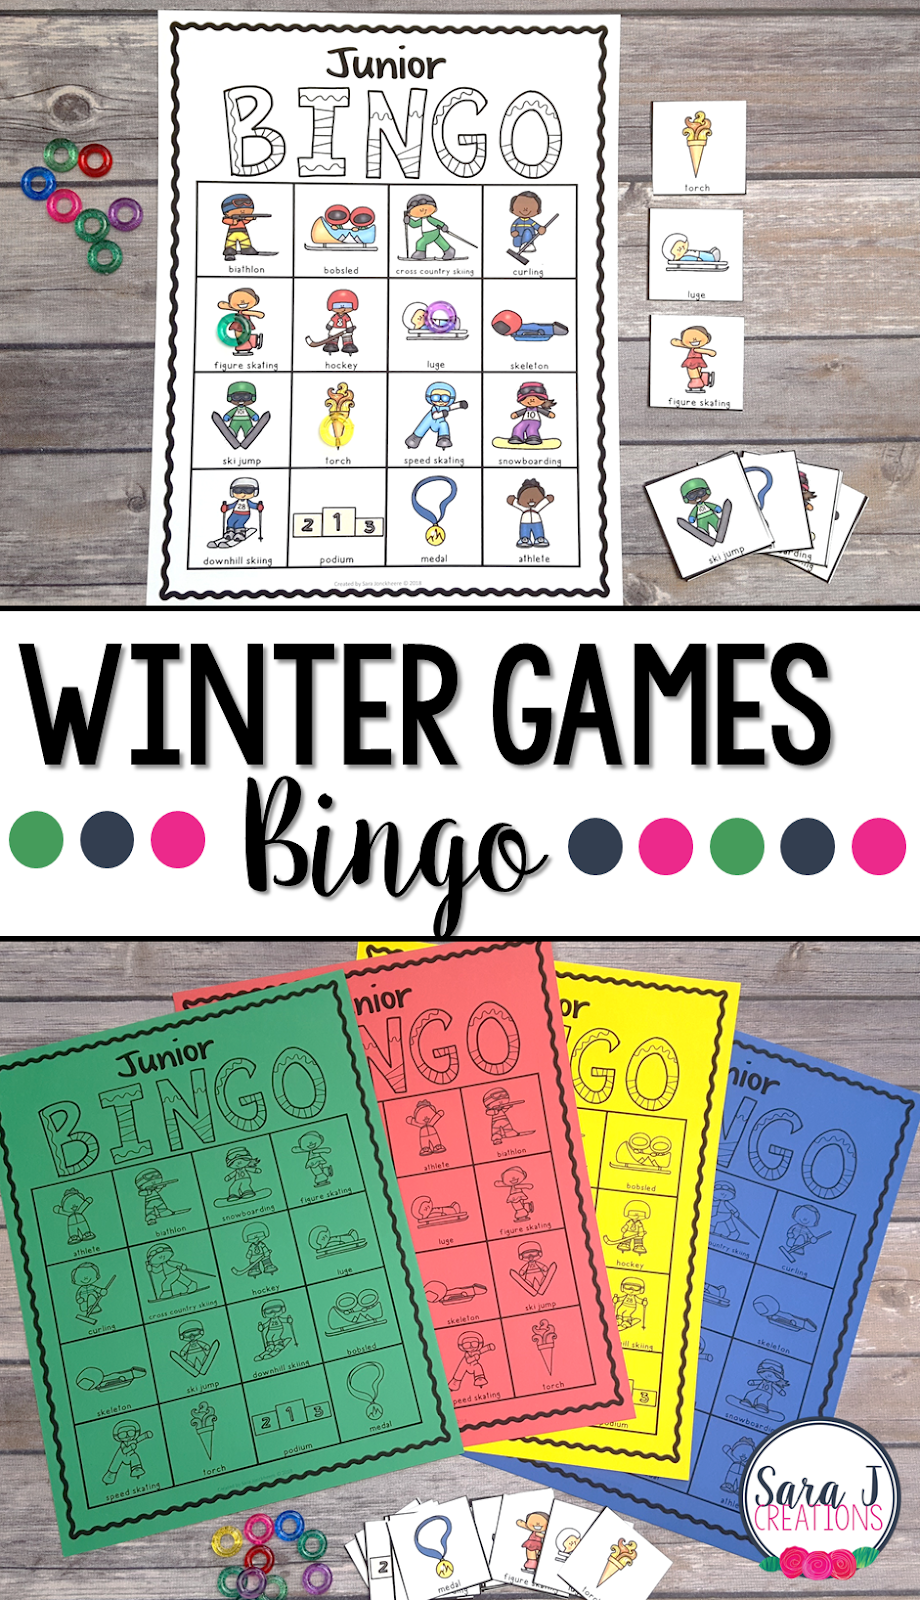 Have fun learning about the different events in the Winter Games with this fun junior bingo game.